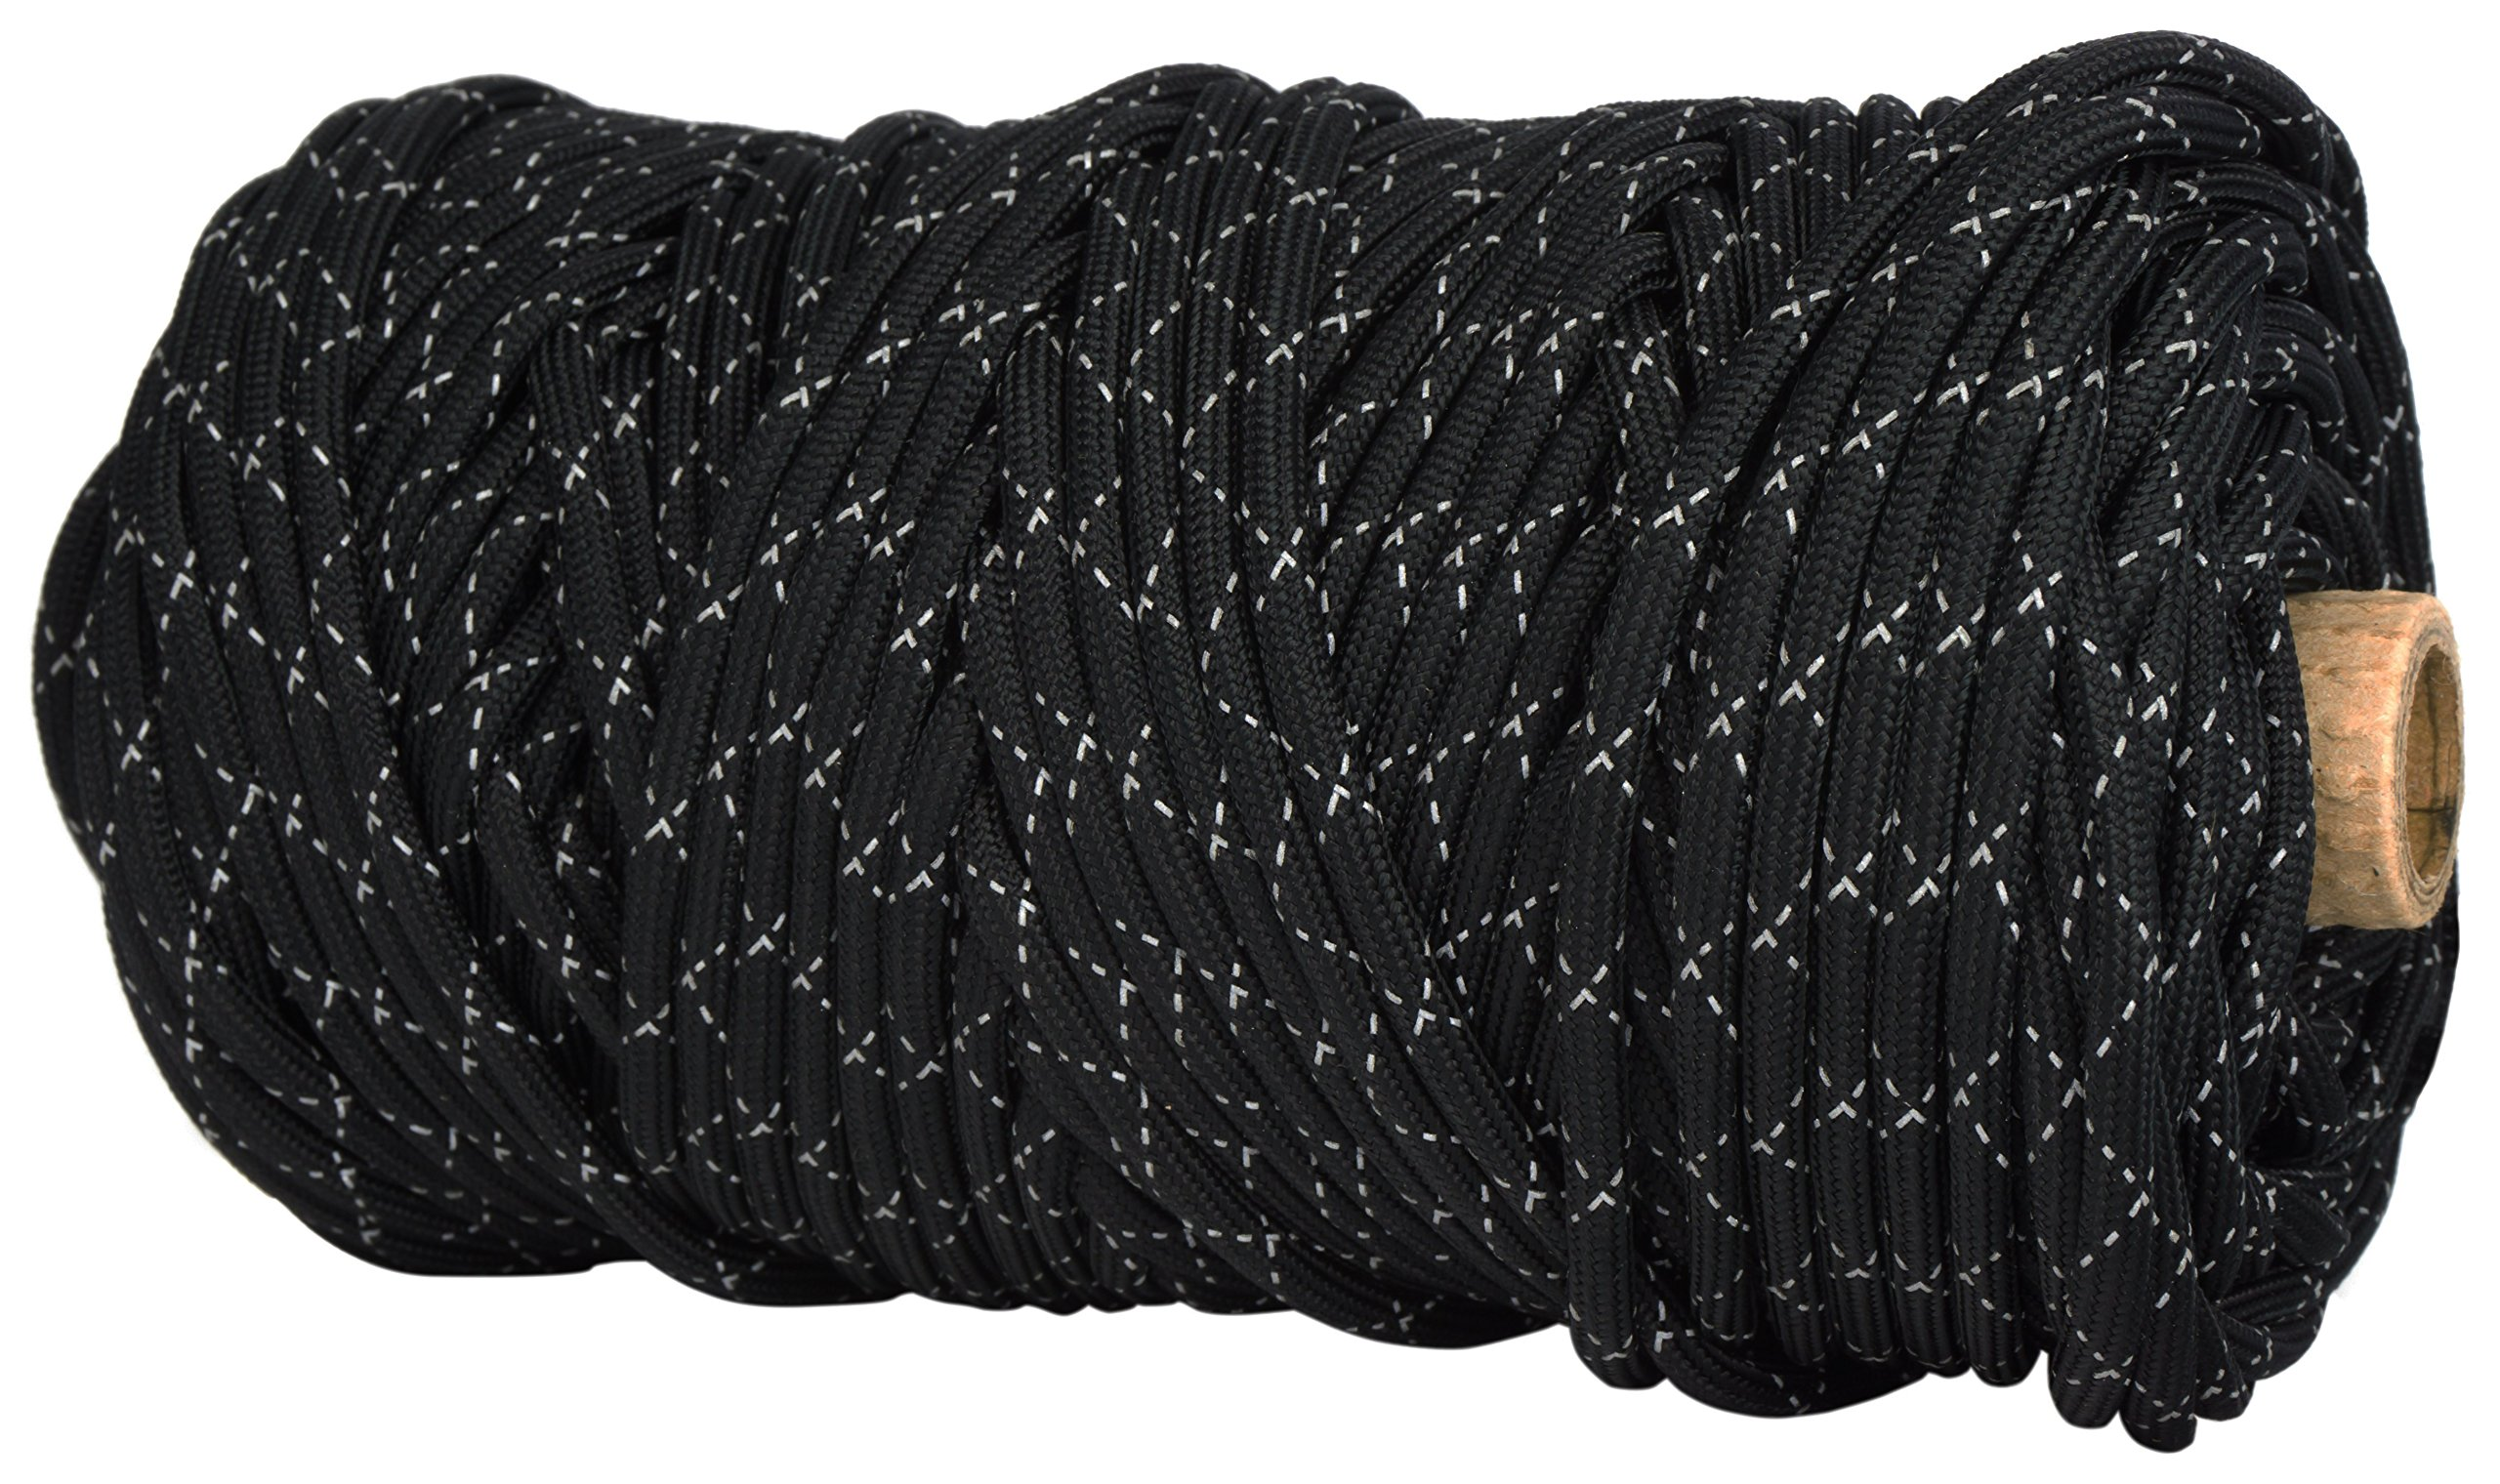 TOUGH-GRID New 700lb Double-Reflective Paracord/Parachute Cord - 2 Vibrant Retro-Reflective Strands for The Ultimate High-Visibility Cord - 100% Nylon - Made in USA. - 100Ft. Black Reflective by TOUGH-GRID (Image #2)